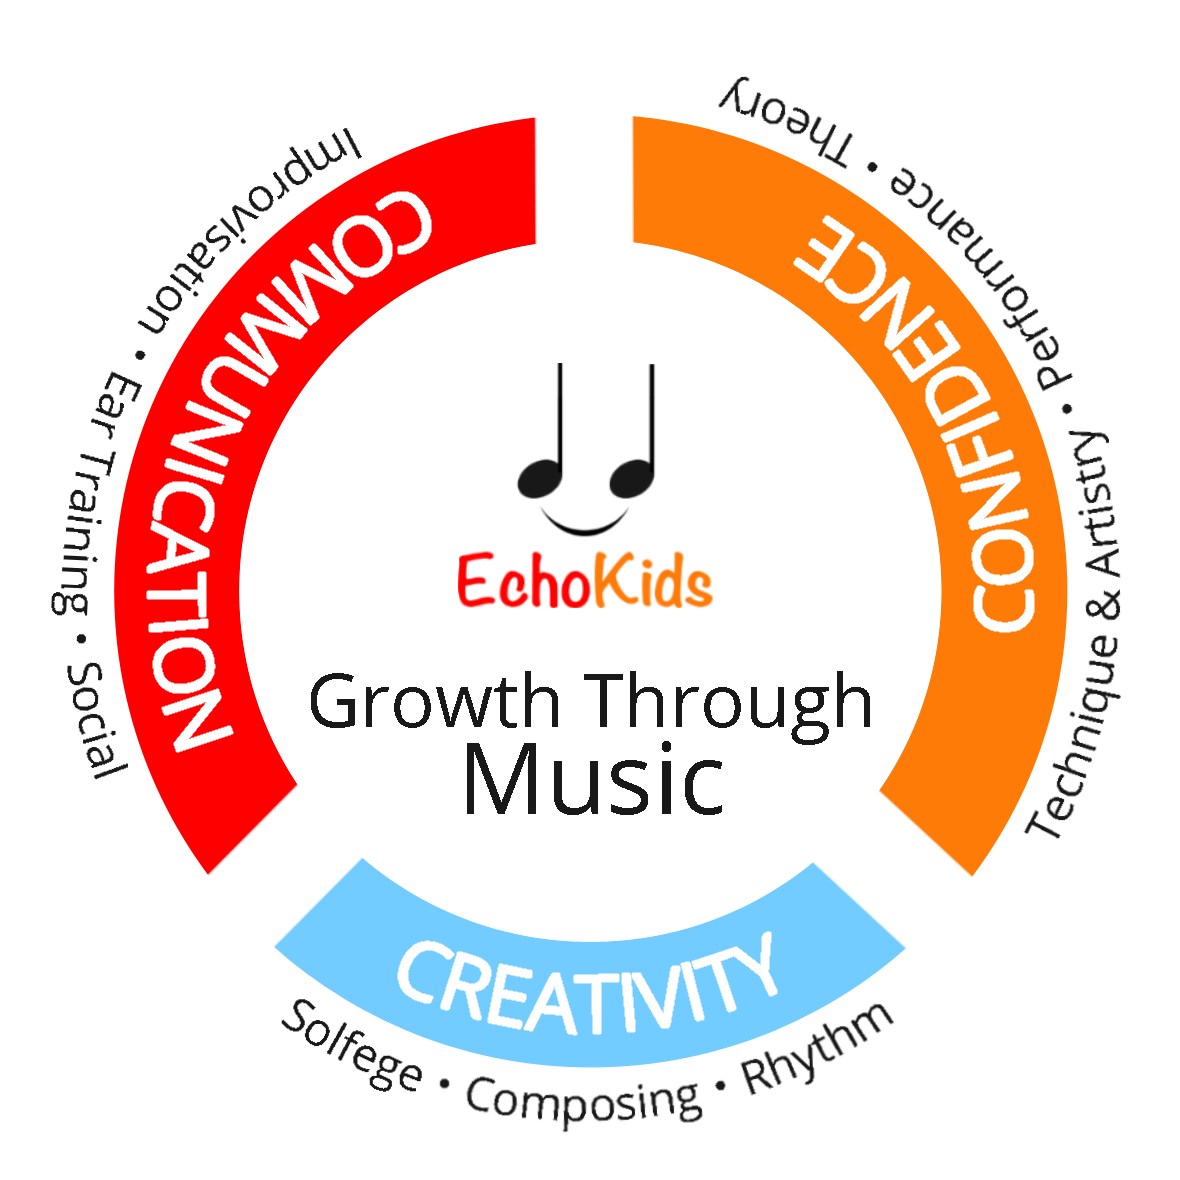 A circle representing Echokids' emphasis on developing communication, creativity, and confidence  through music education